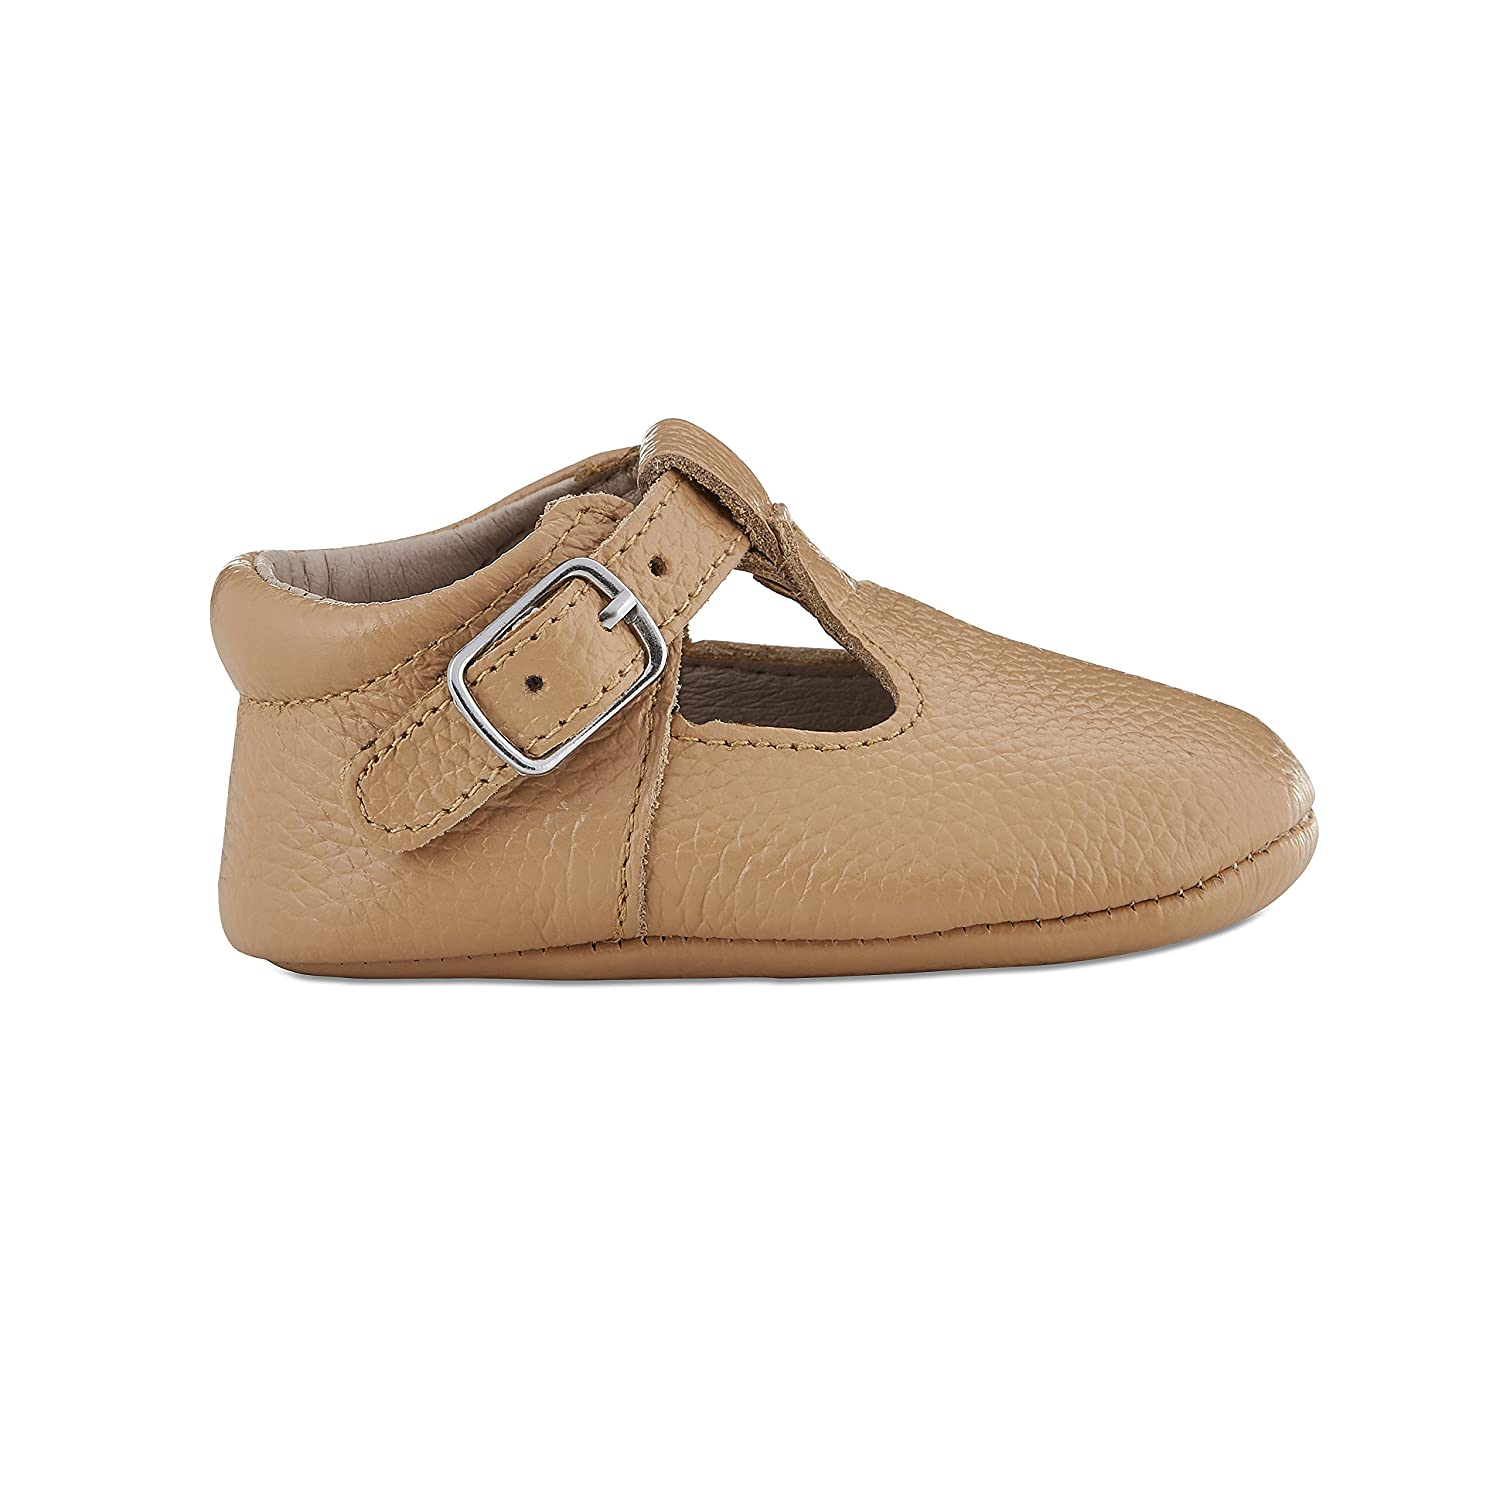 Babe Basics Baby Mary Janes | T-Bars | Genuine Leather Moccasins with T-Strap for Babies and Toddlers Caramel)